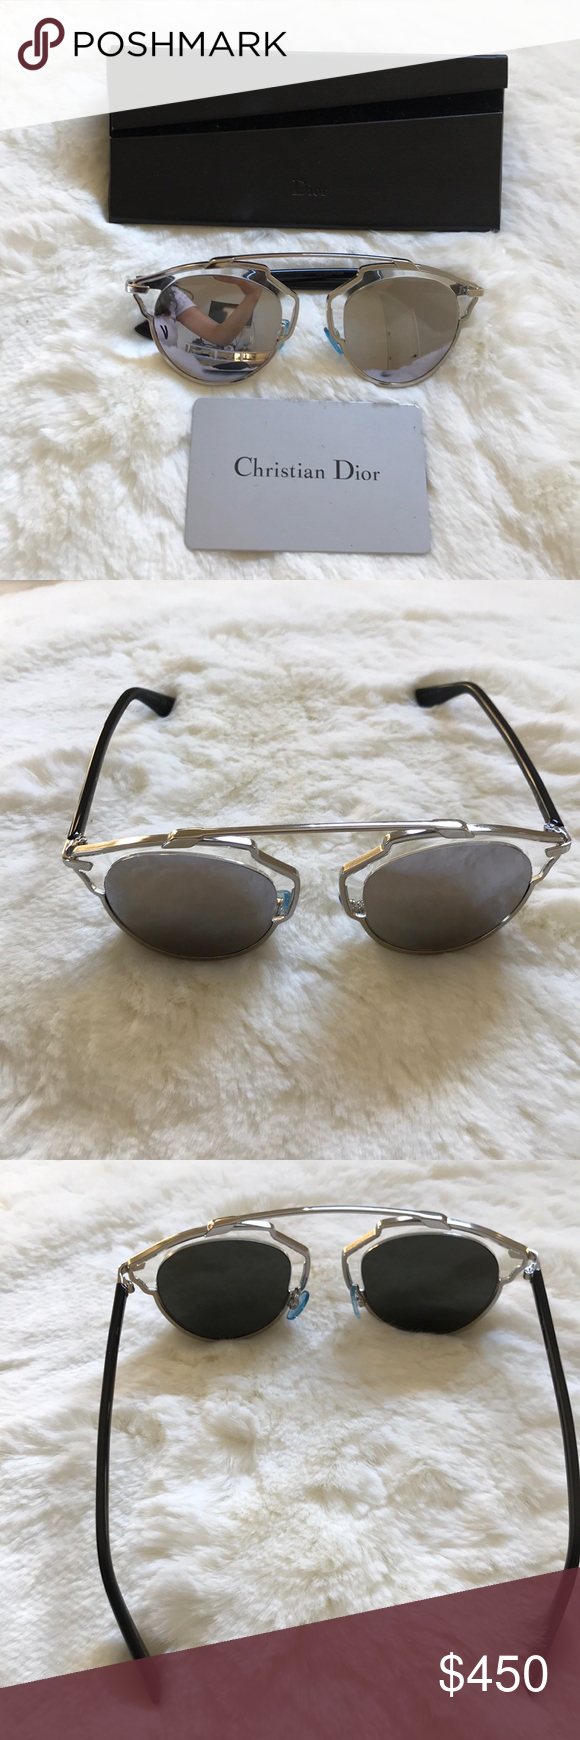 82cdd8e4ae01 Dior so real sunglasses 100% Authentic (see authenticity card) never used  Dior's